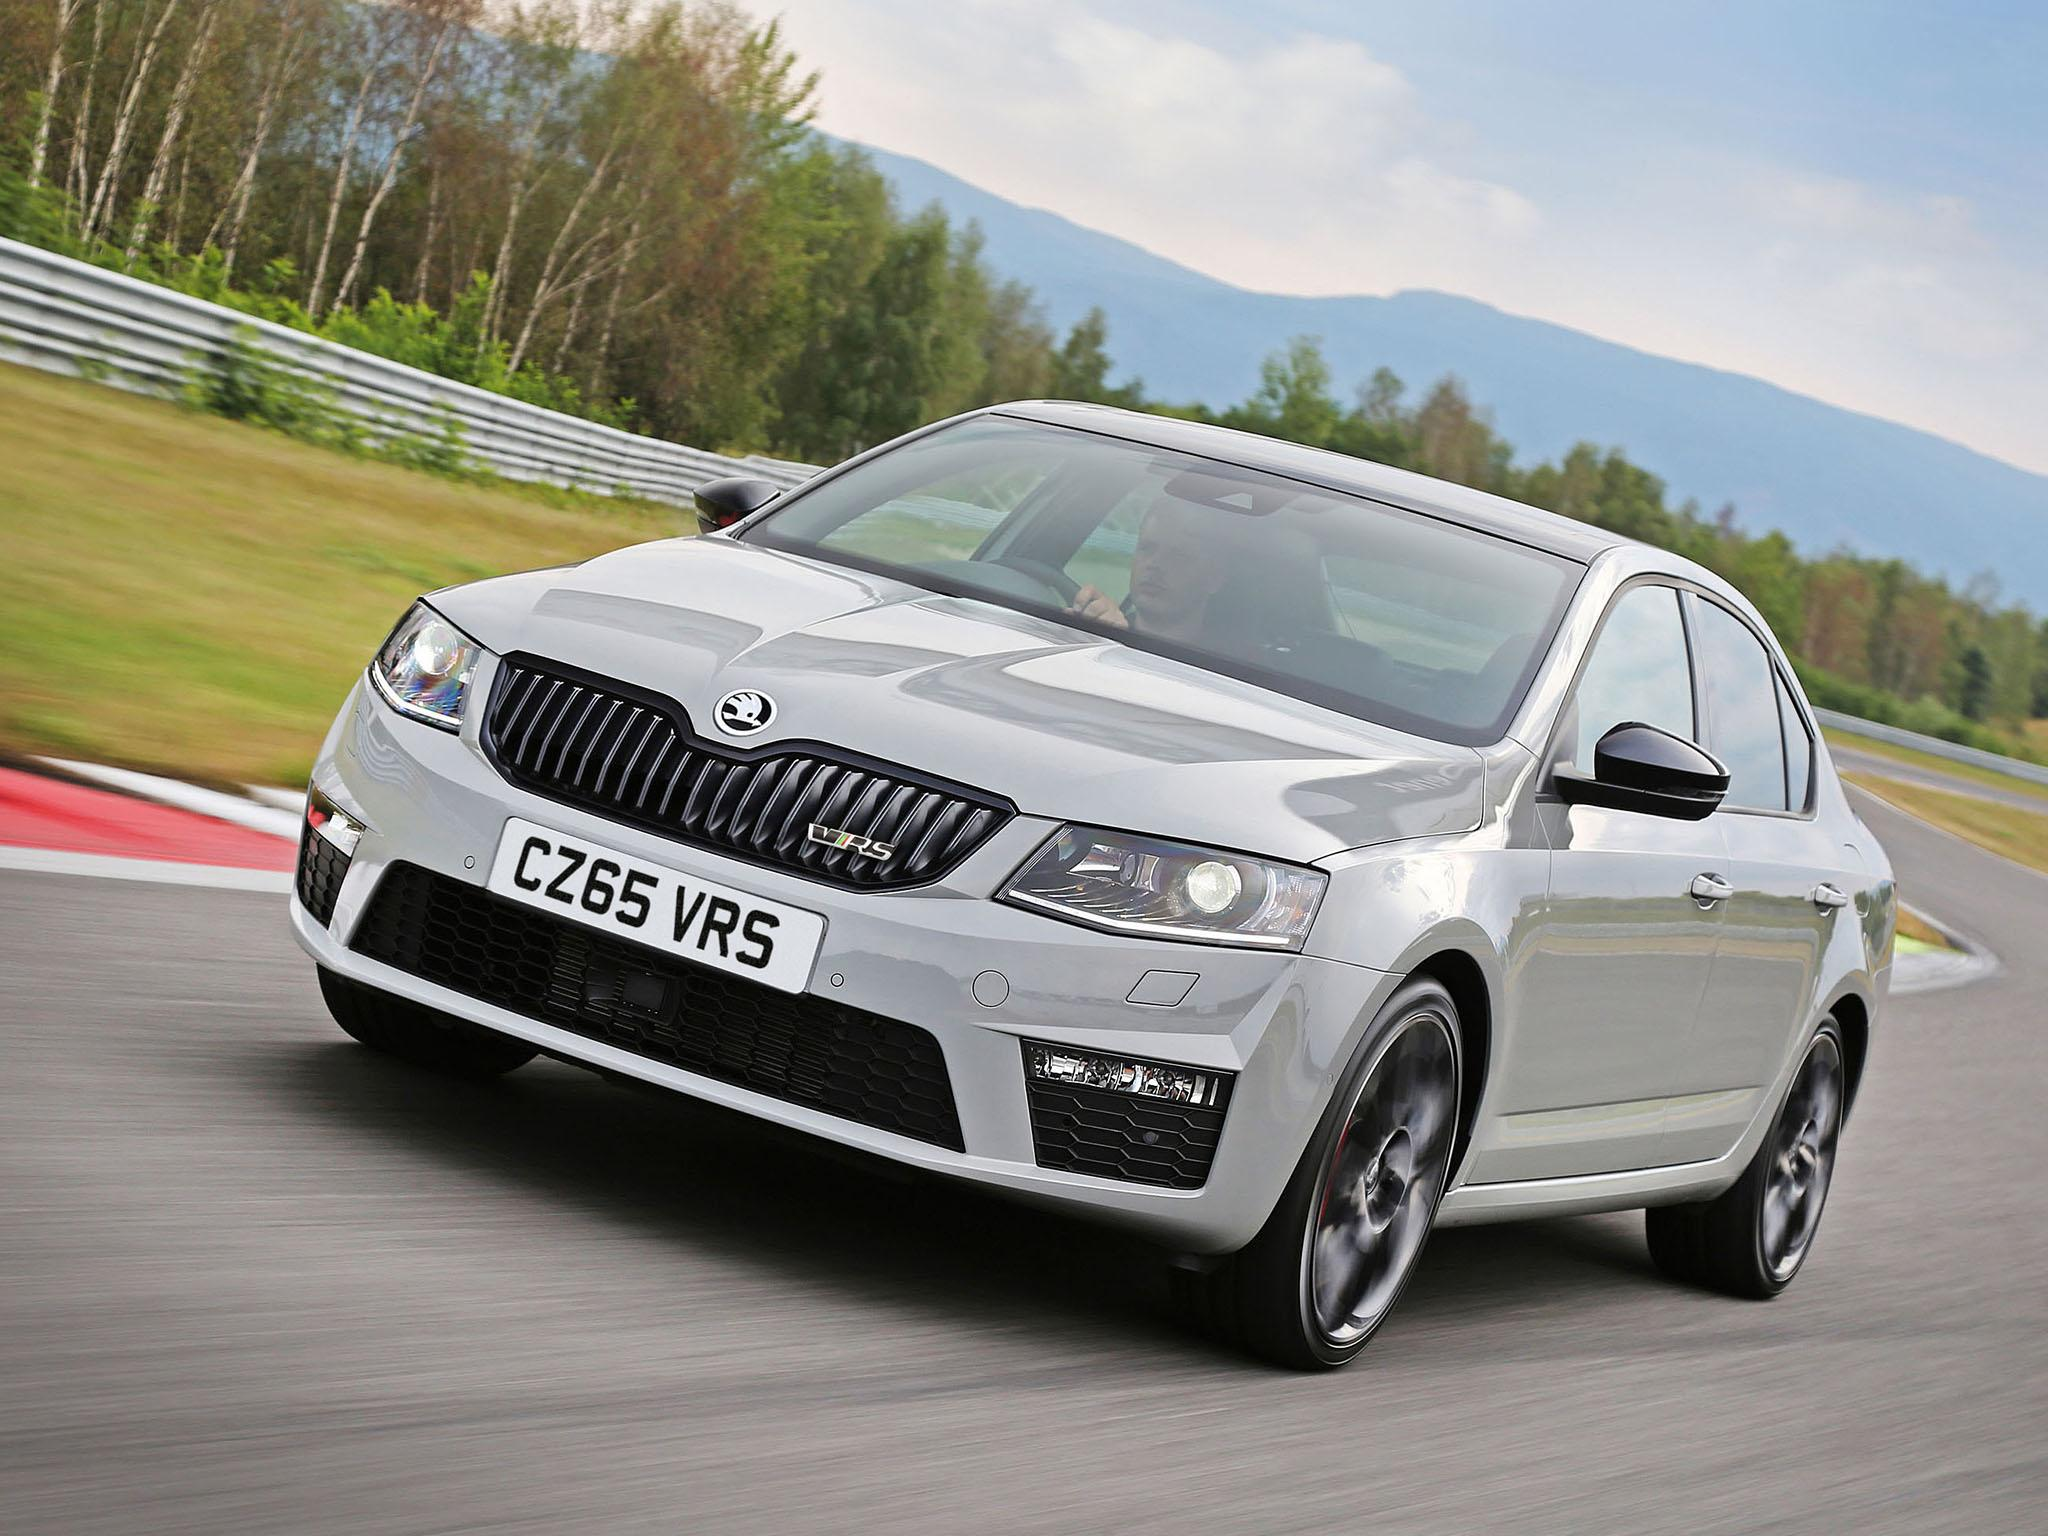 car review skoda octavia vrs 4x4 a reliable shade of grey the independent. Black Bedroom Furniture Sets. Home Design Ideas